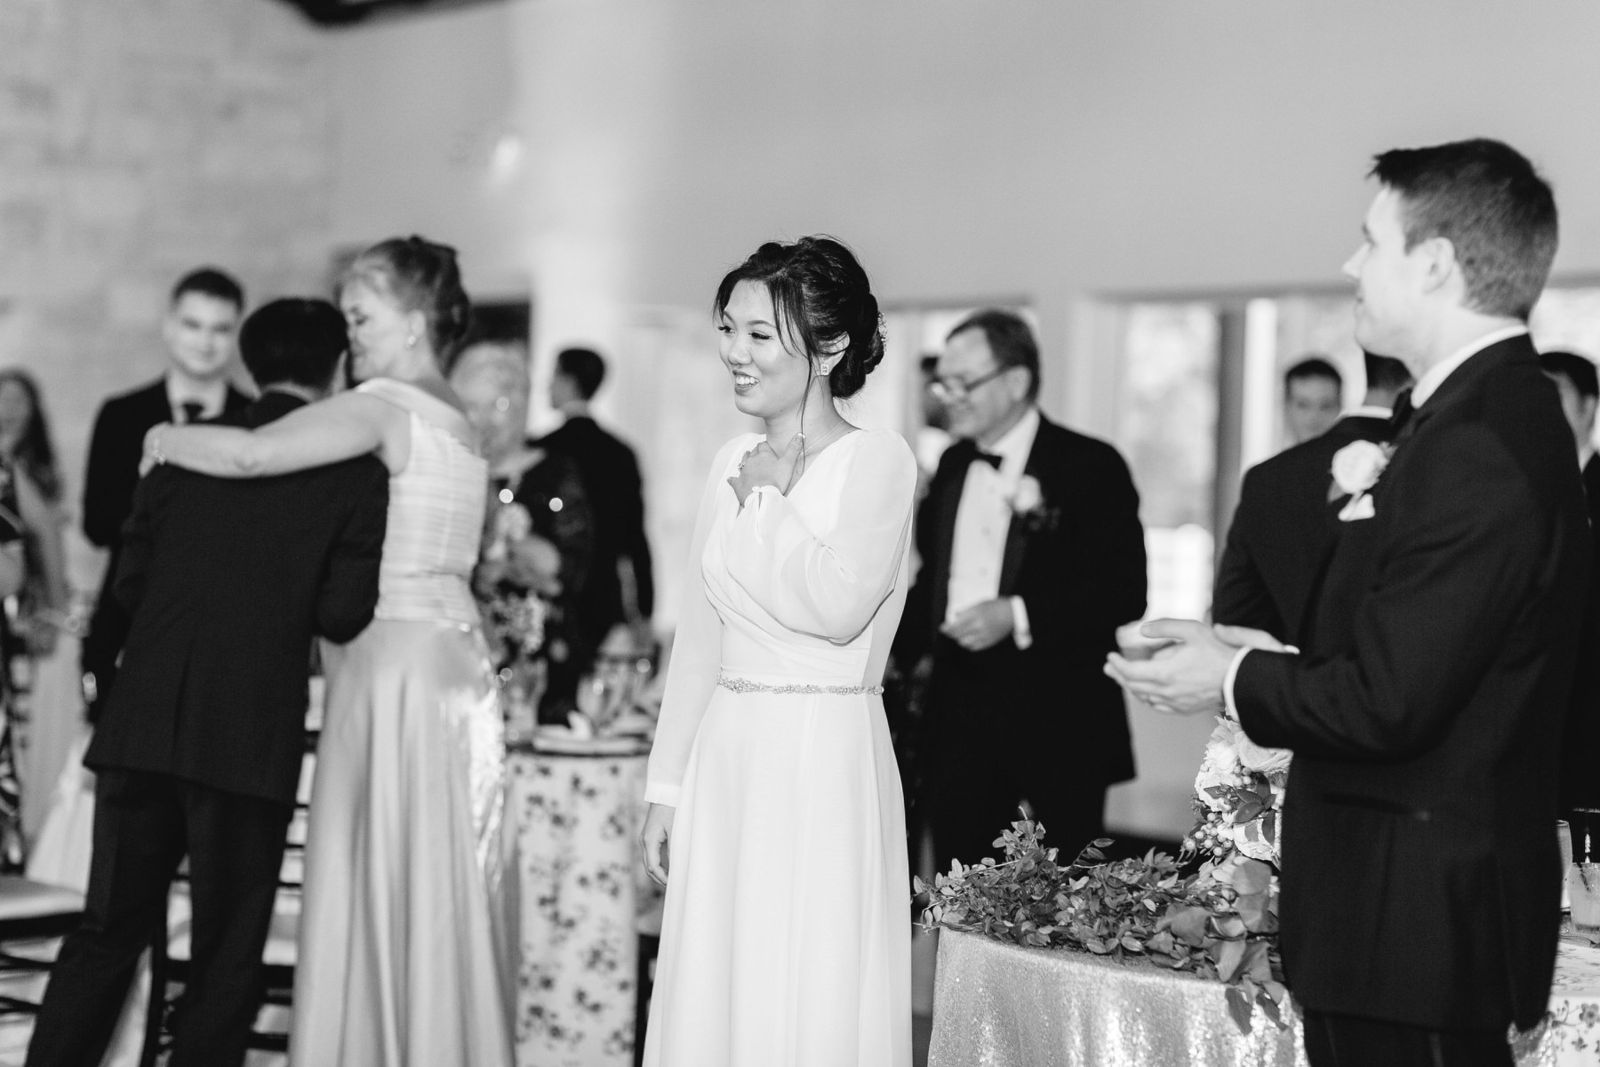 Joan Zhang wearing a used wedding dress at her reception